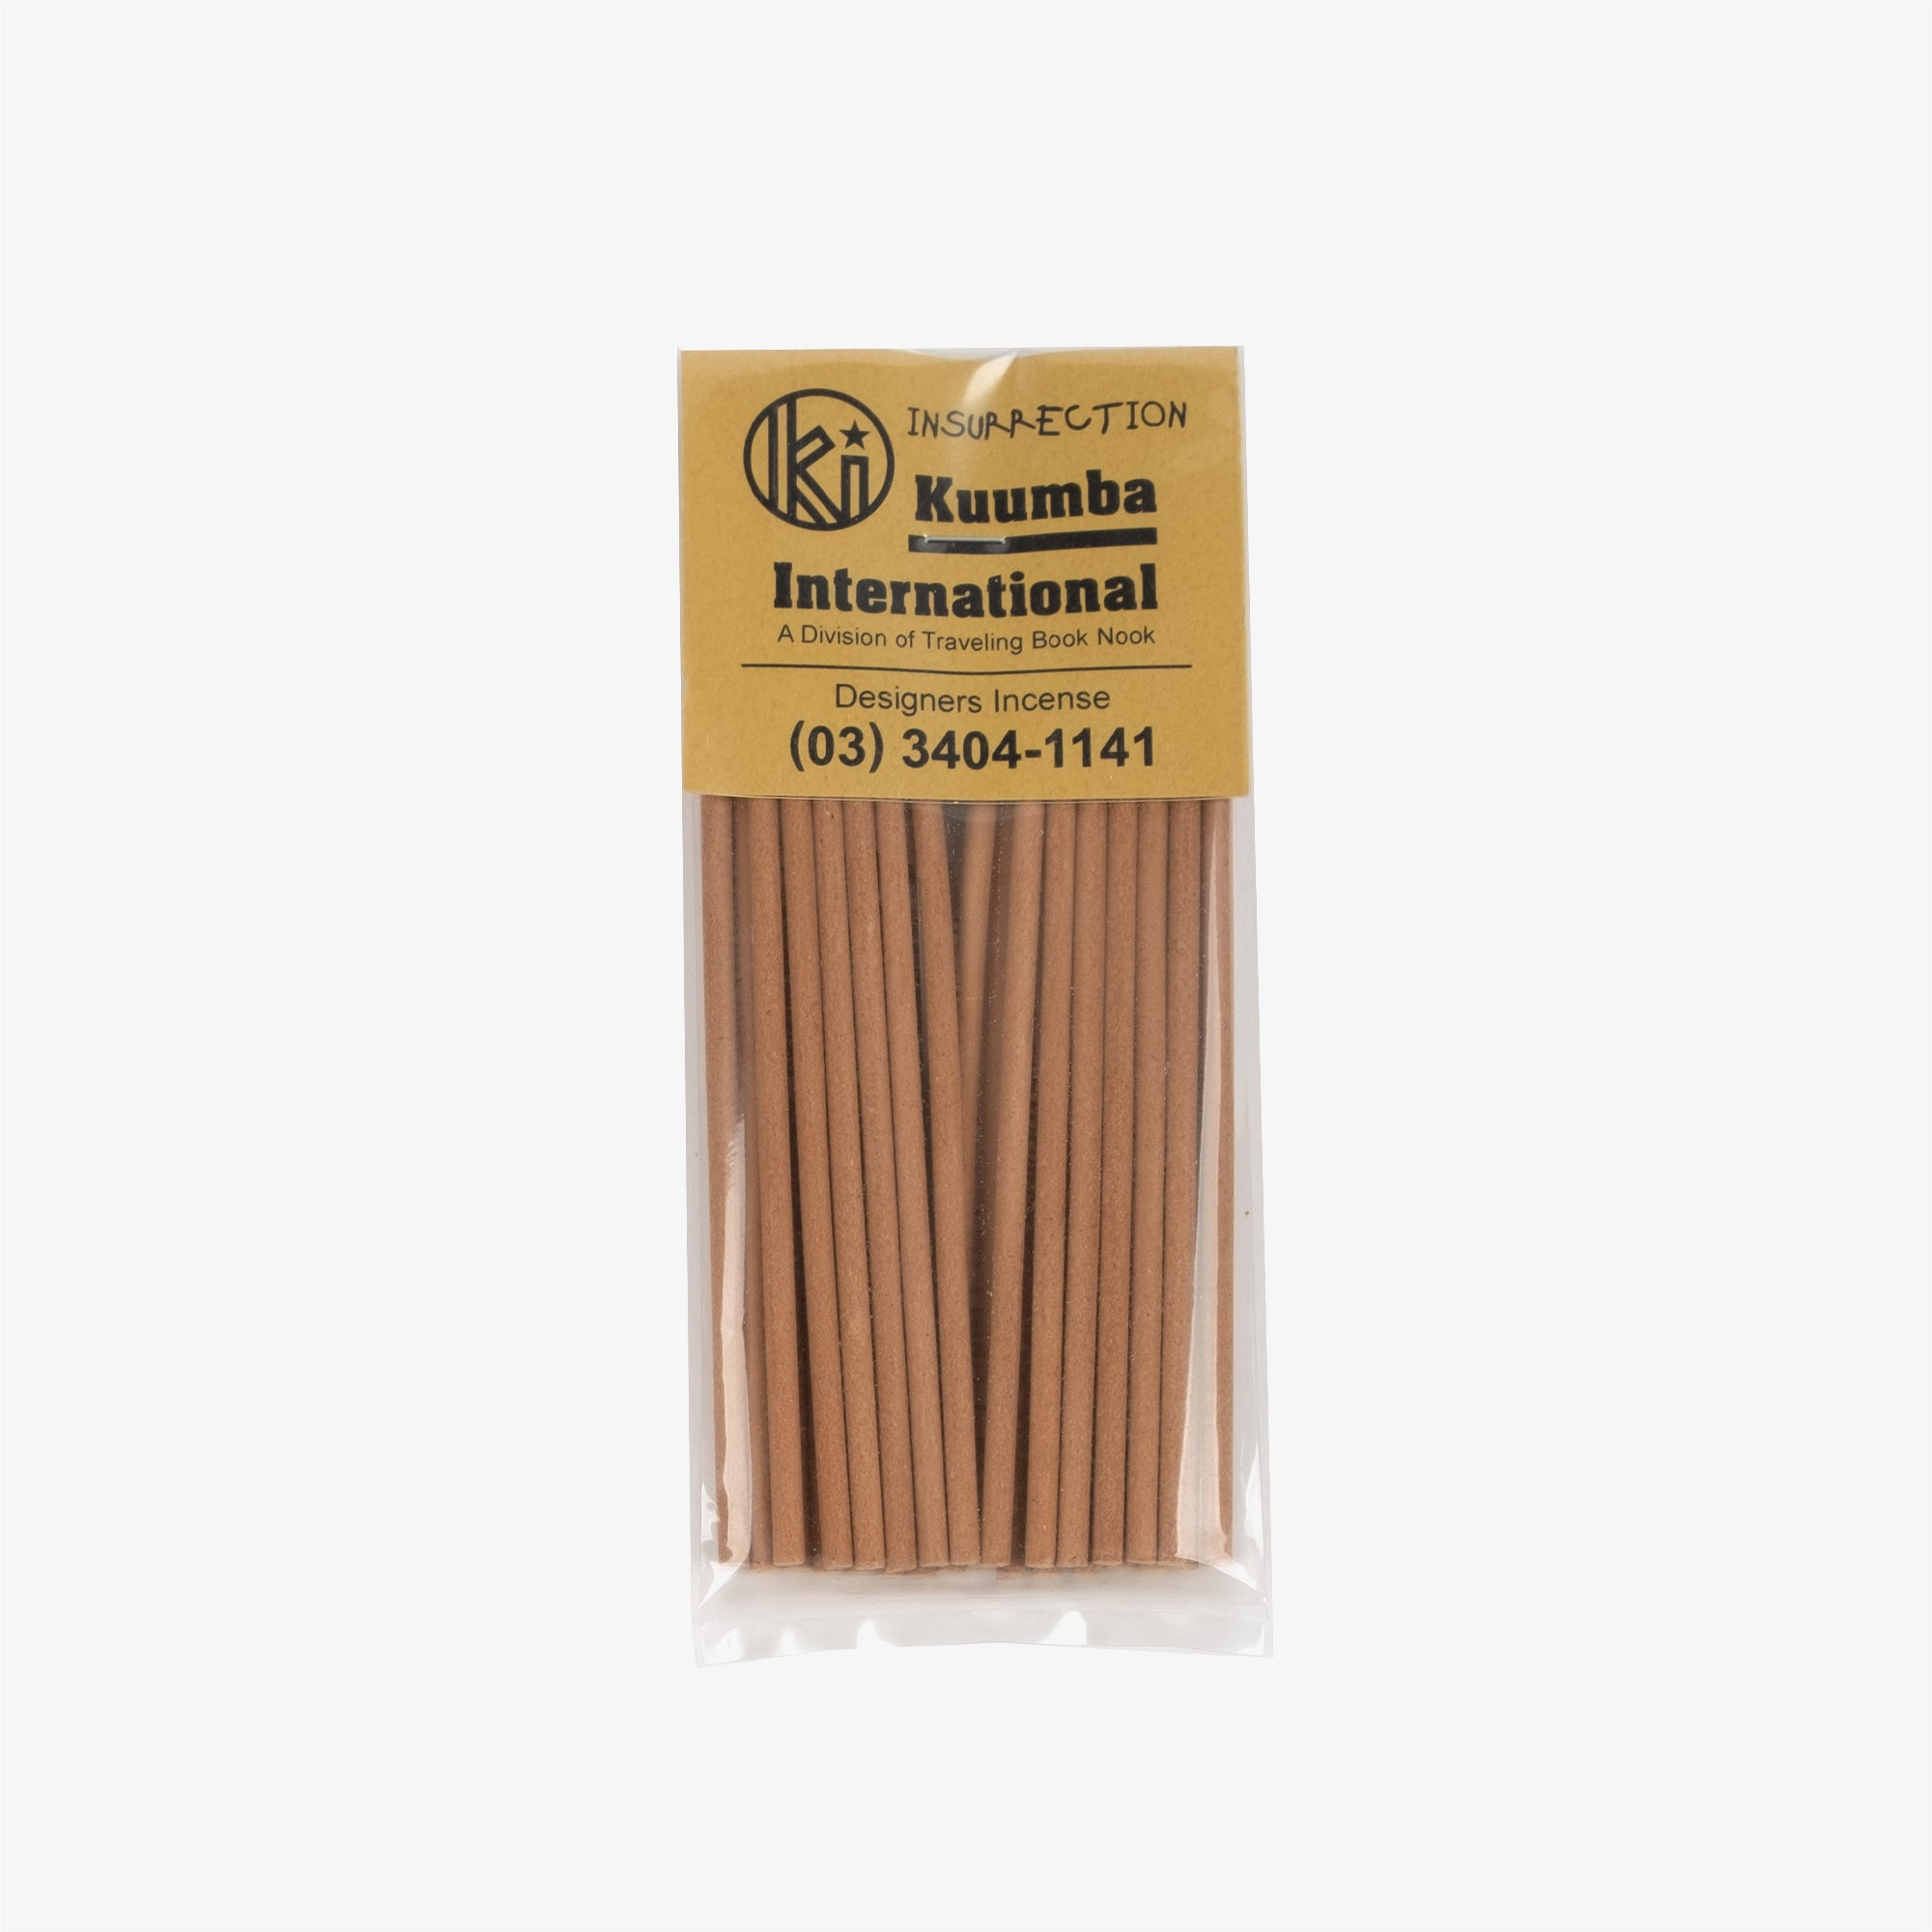 KUUMBA Incense - Insurrection Short Sticks 1